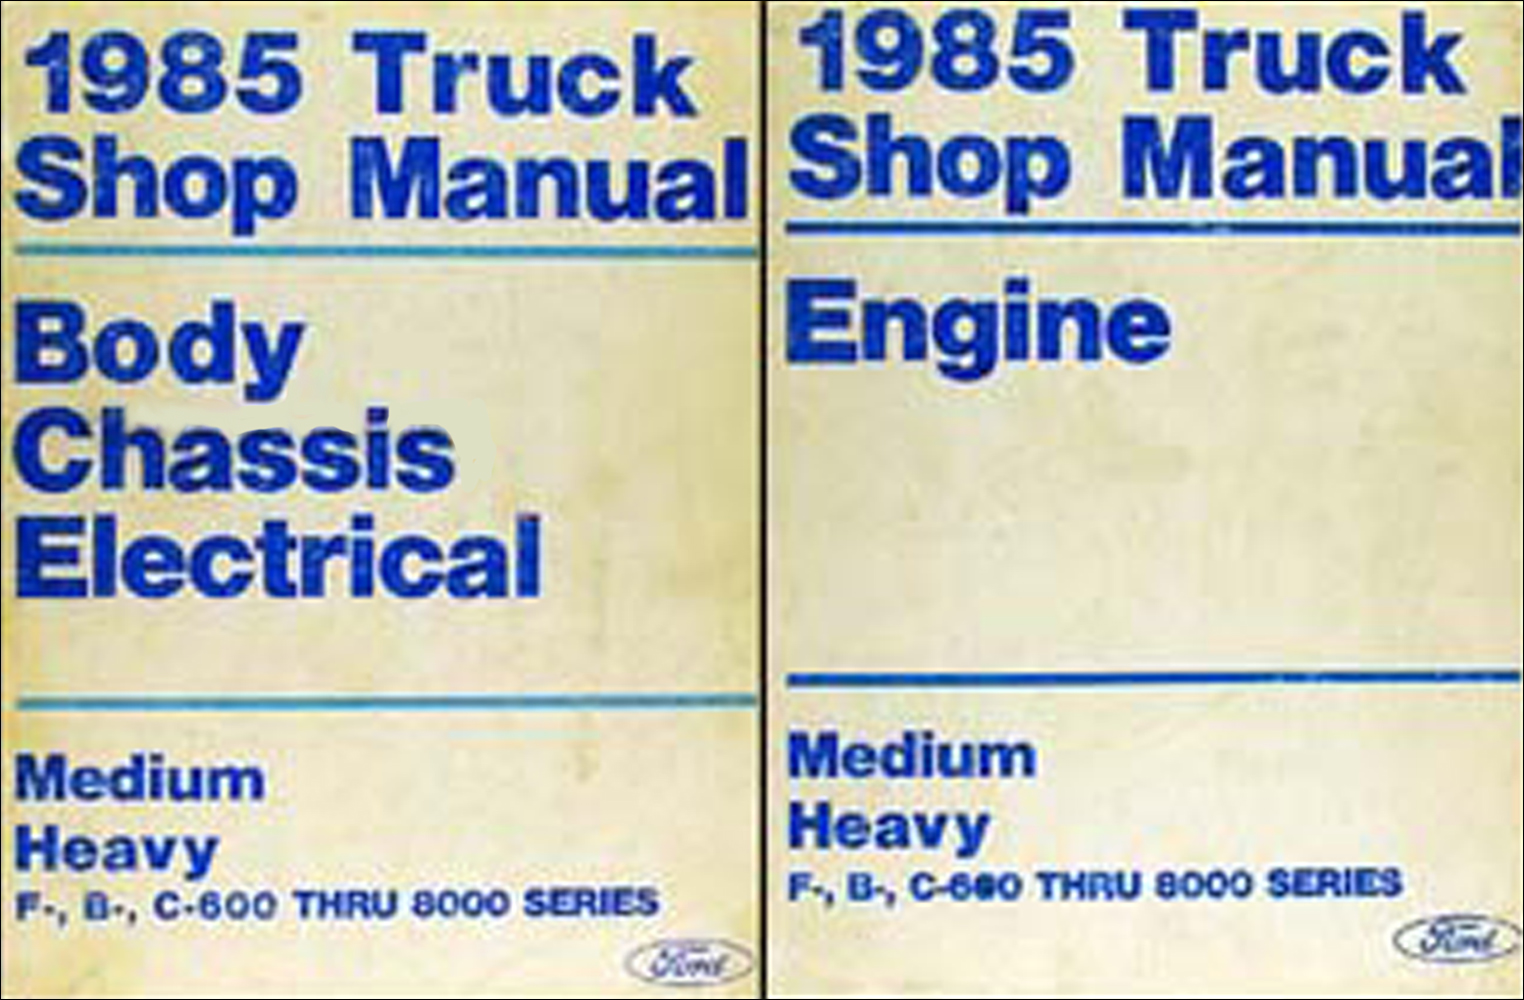 1985 Ford F B C 600-8000 Medium and Heavy Truck Repair Shop Manual Set